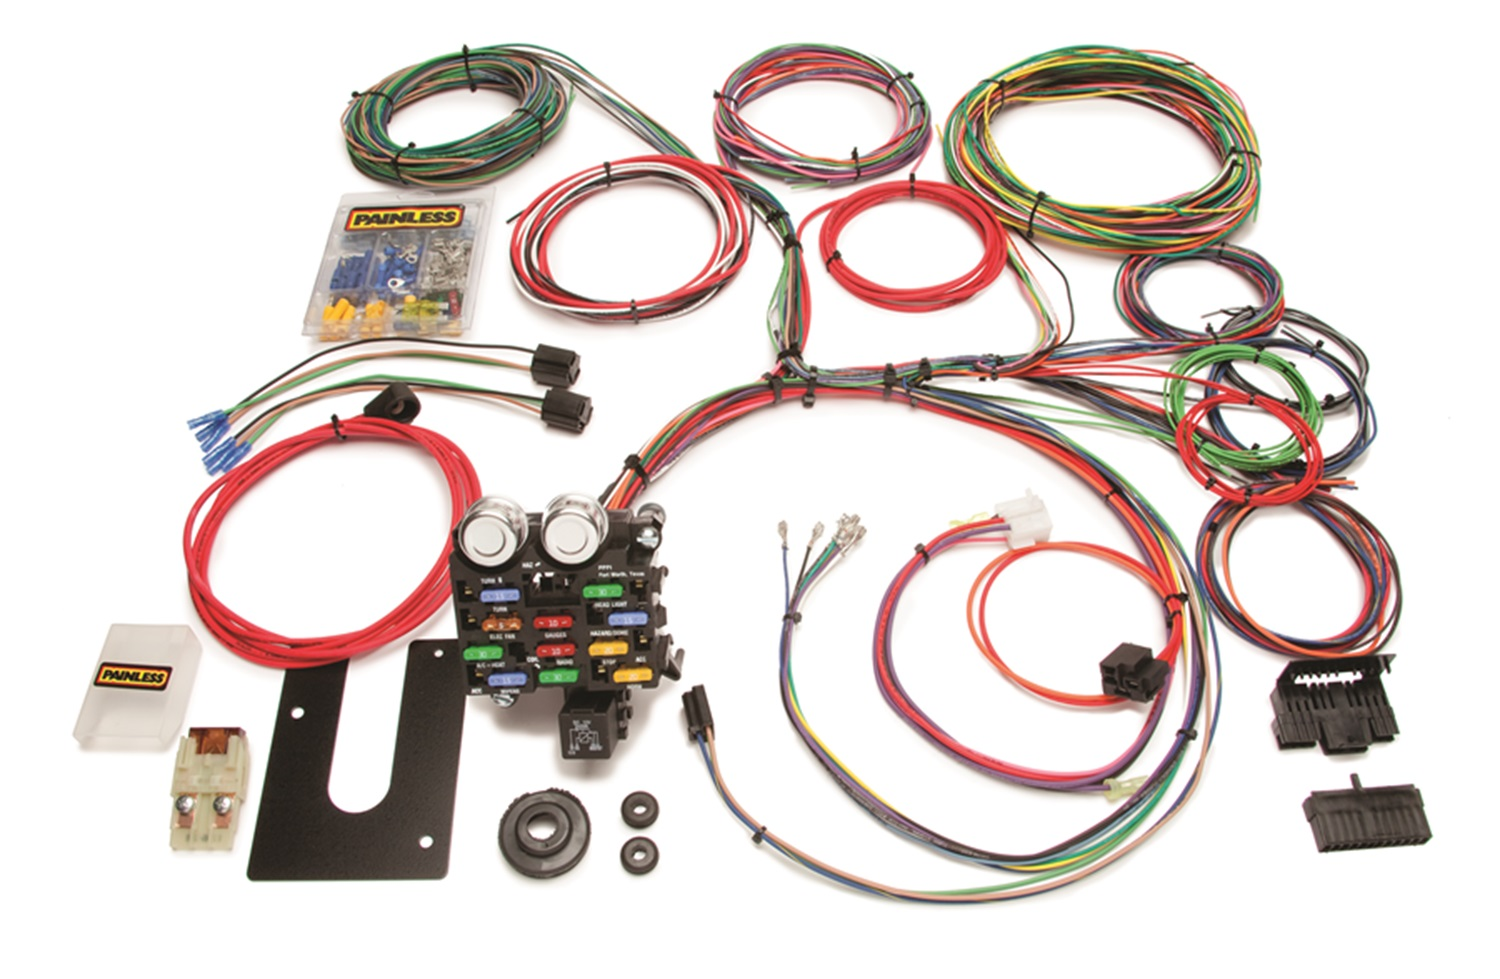 painless 10101 21-circuit classic customizable chassis harness gm keyed  column